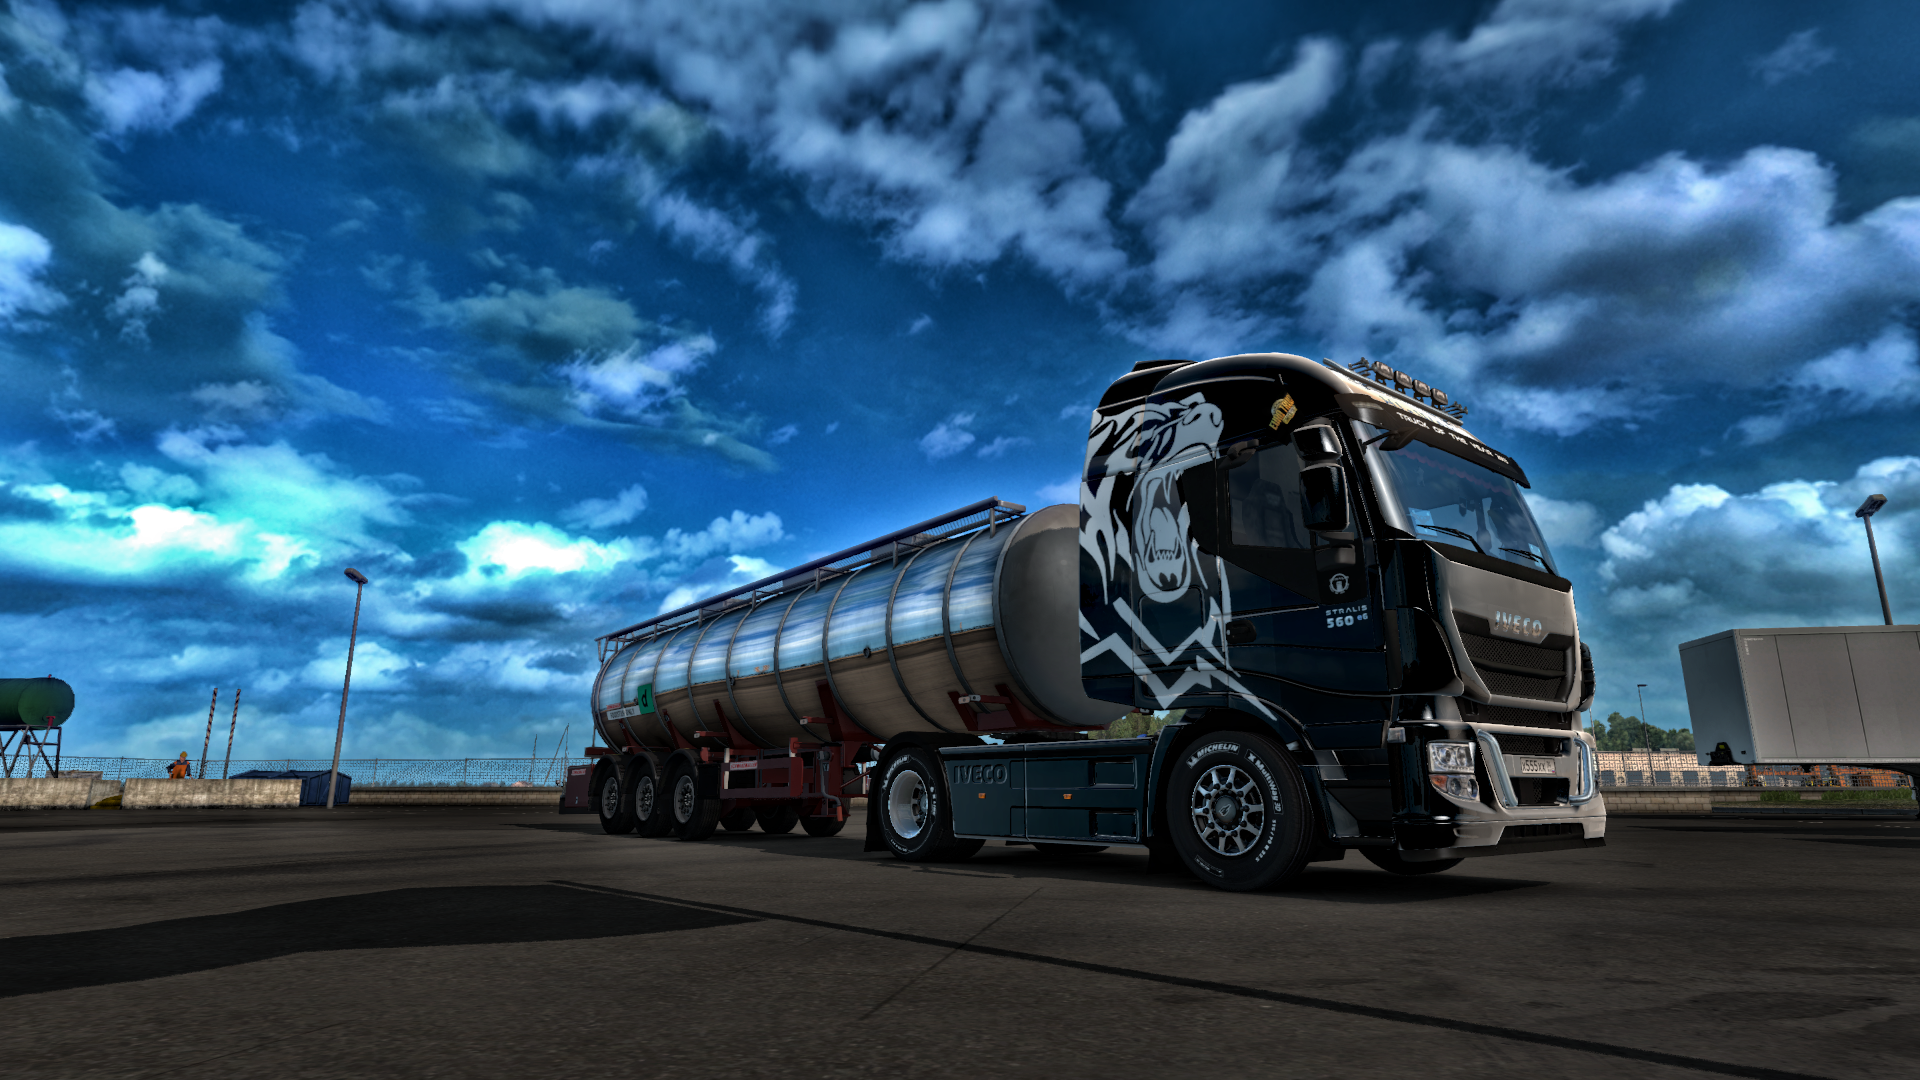 ets2_20190417_192806_00.png